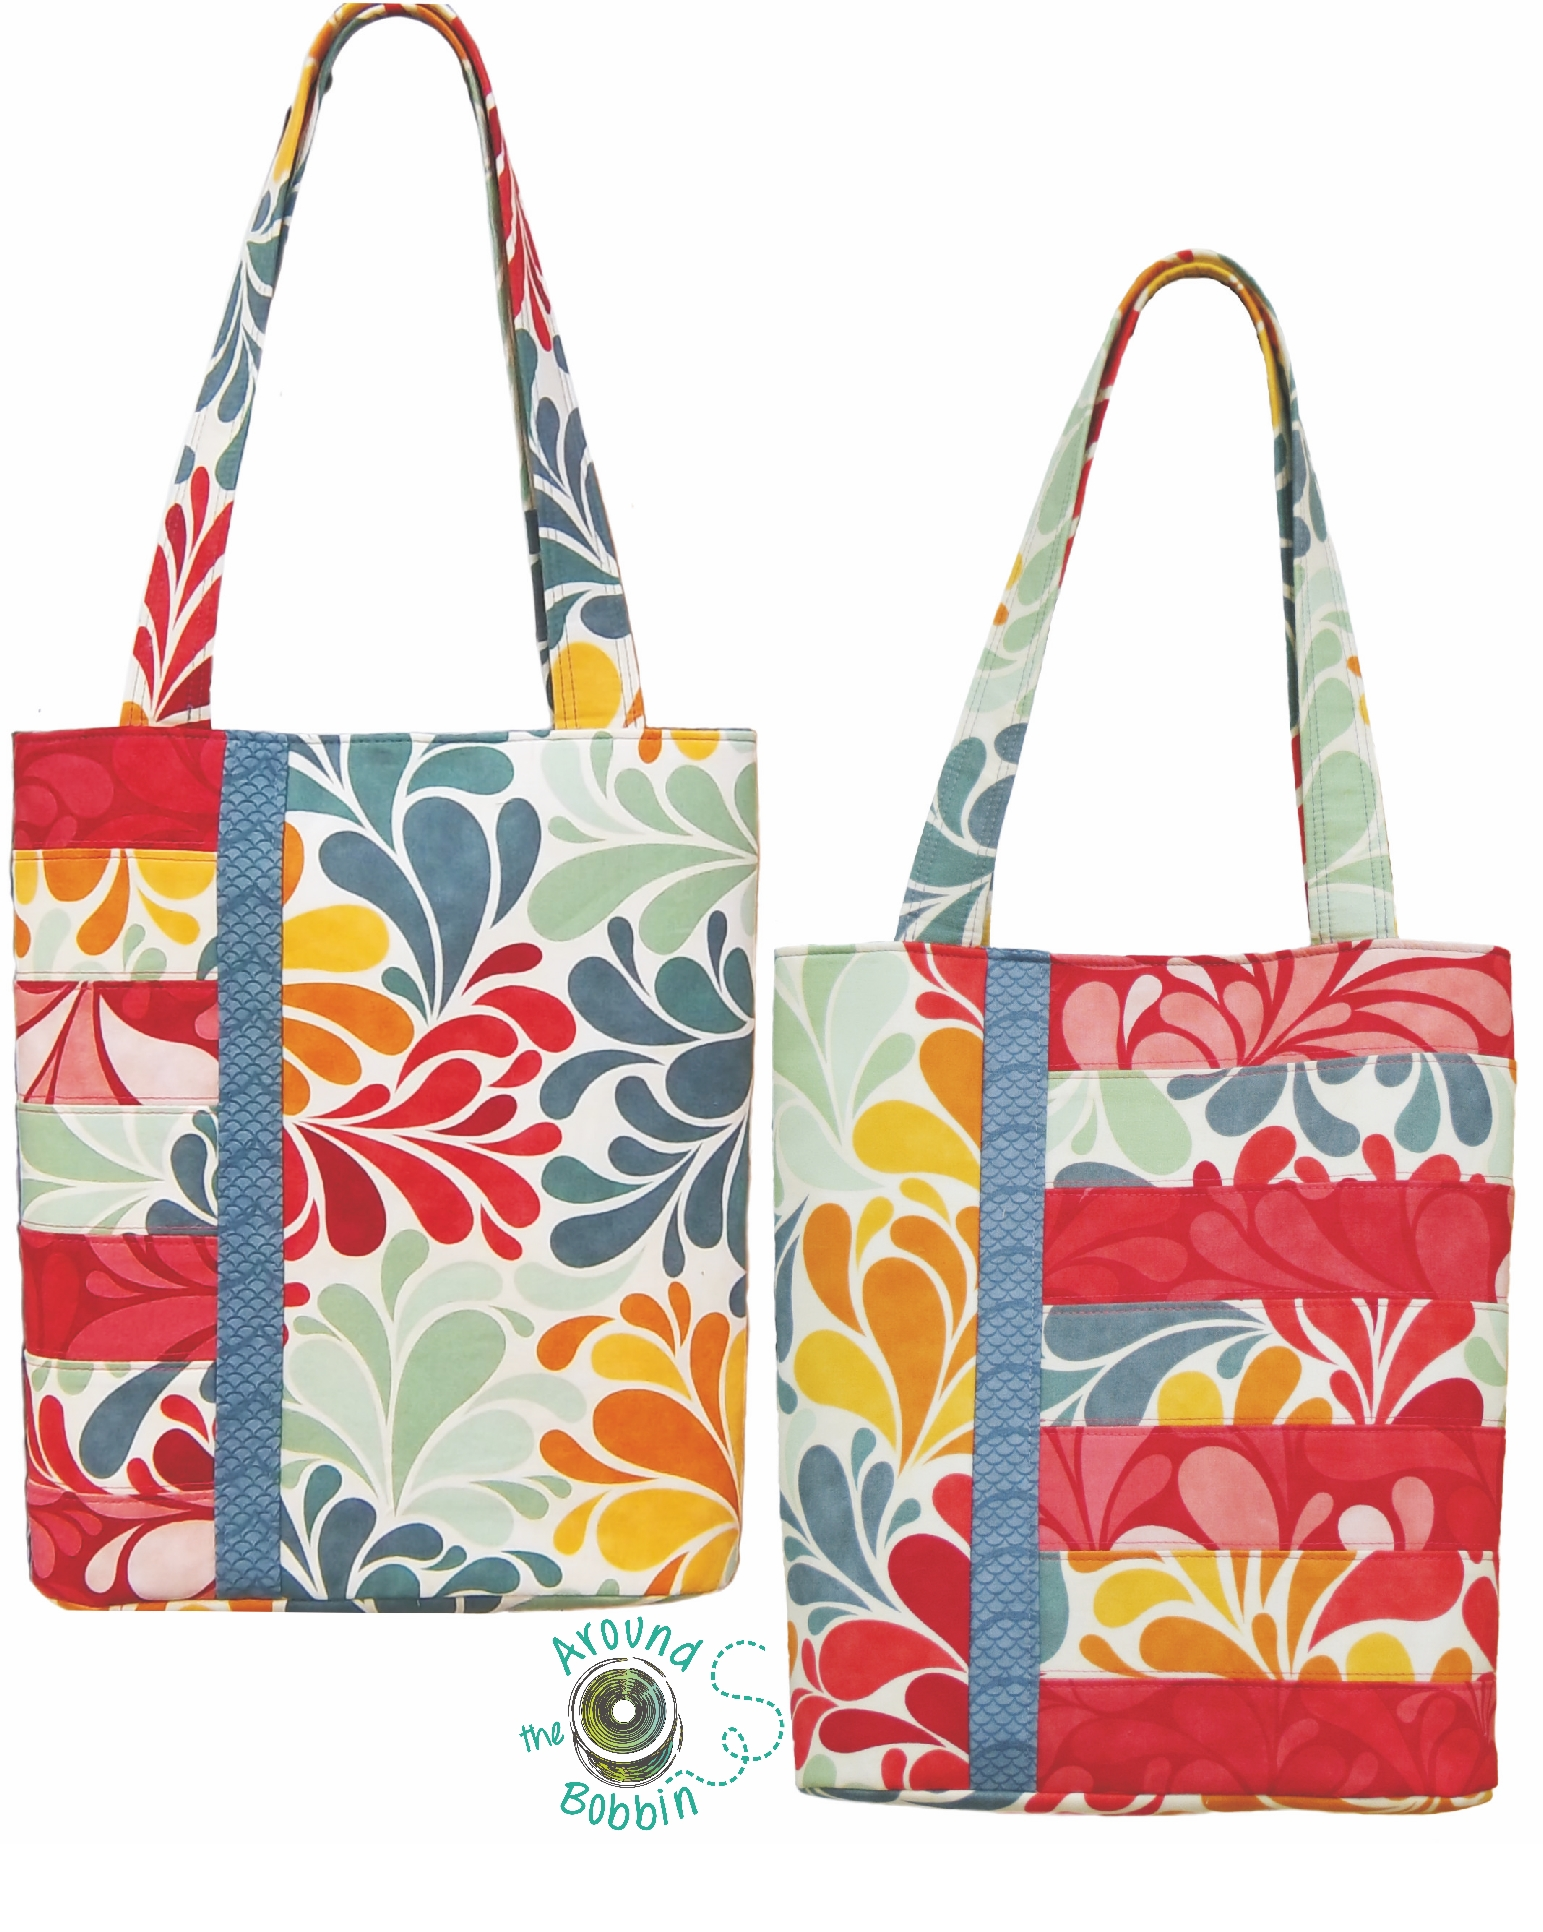 Book club bag and sassy tote bag patterns converted to pdf bookclubfbwlogo jeuxipadfo Gallery